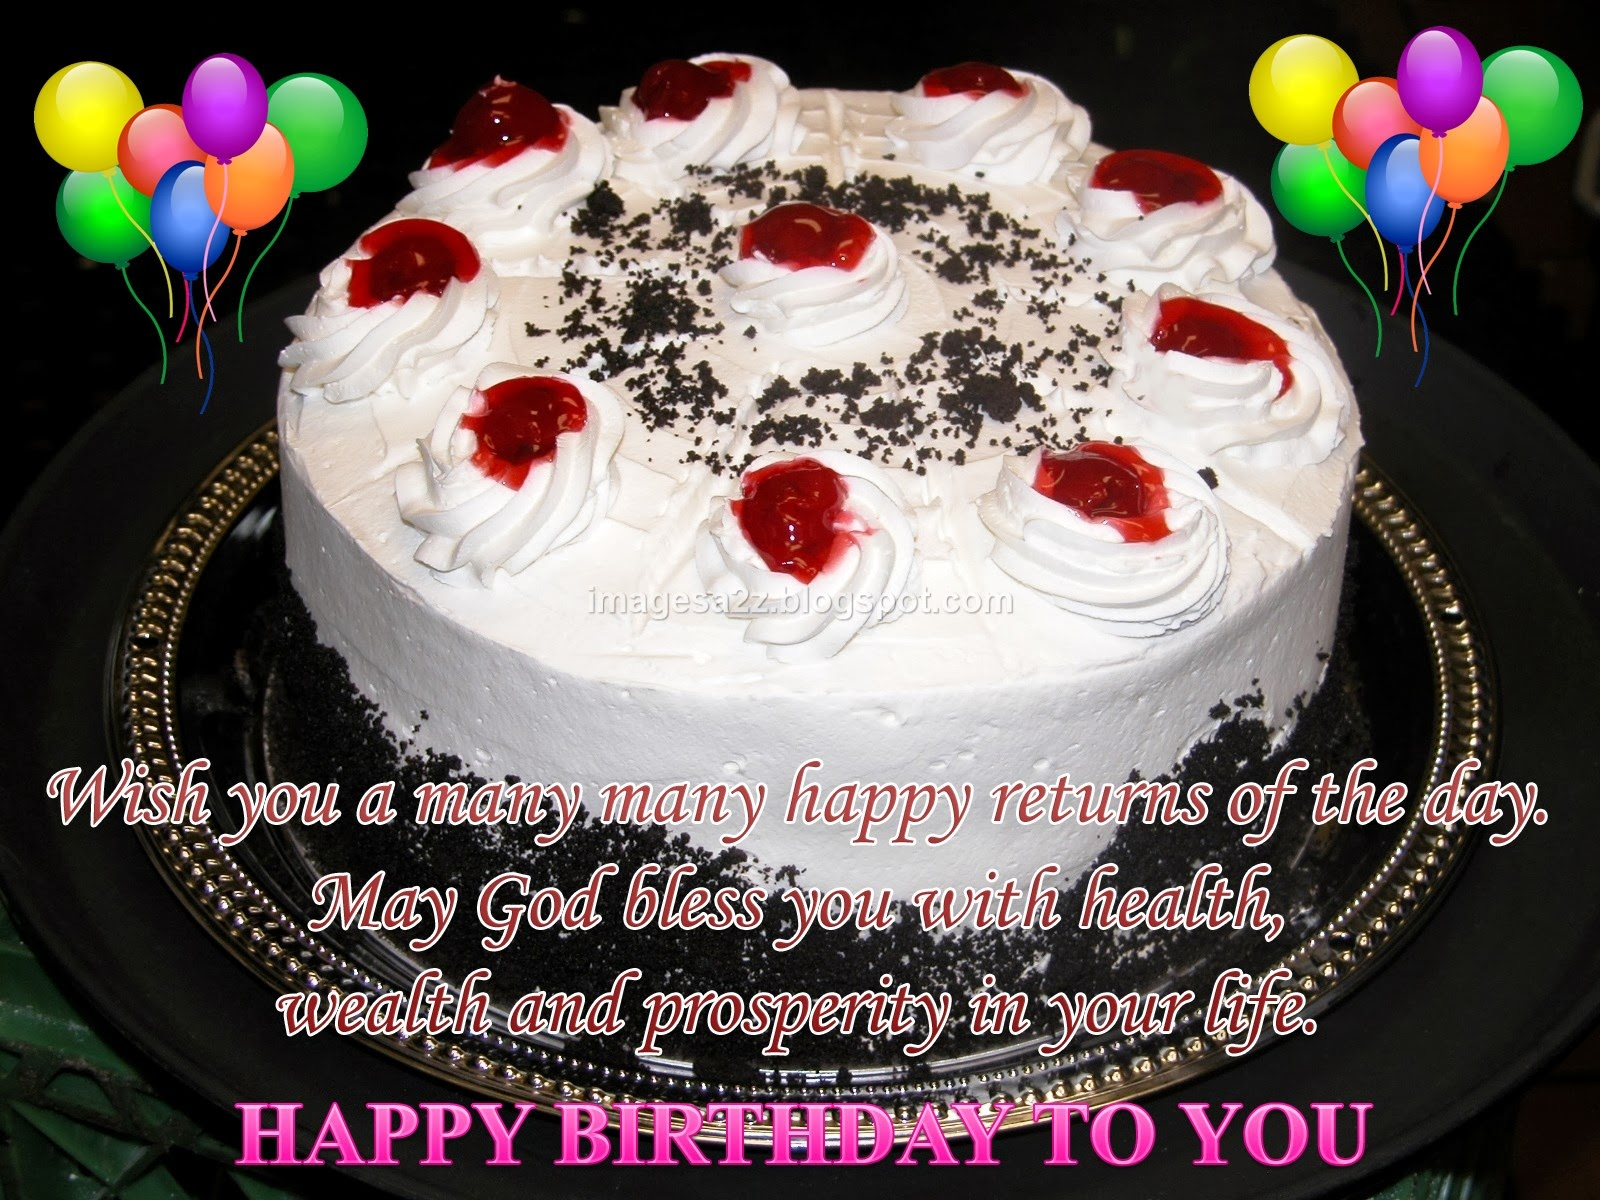 Top 24 images Funny and Happy Birthday Wishes for Sister with